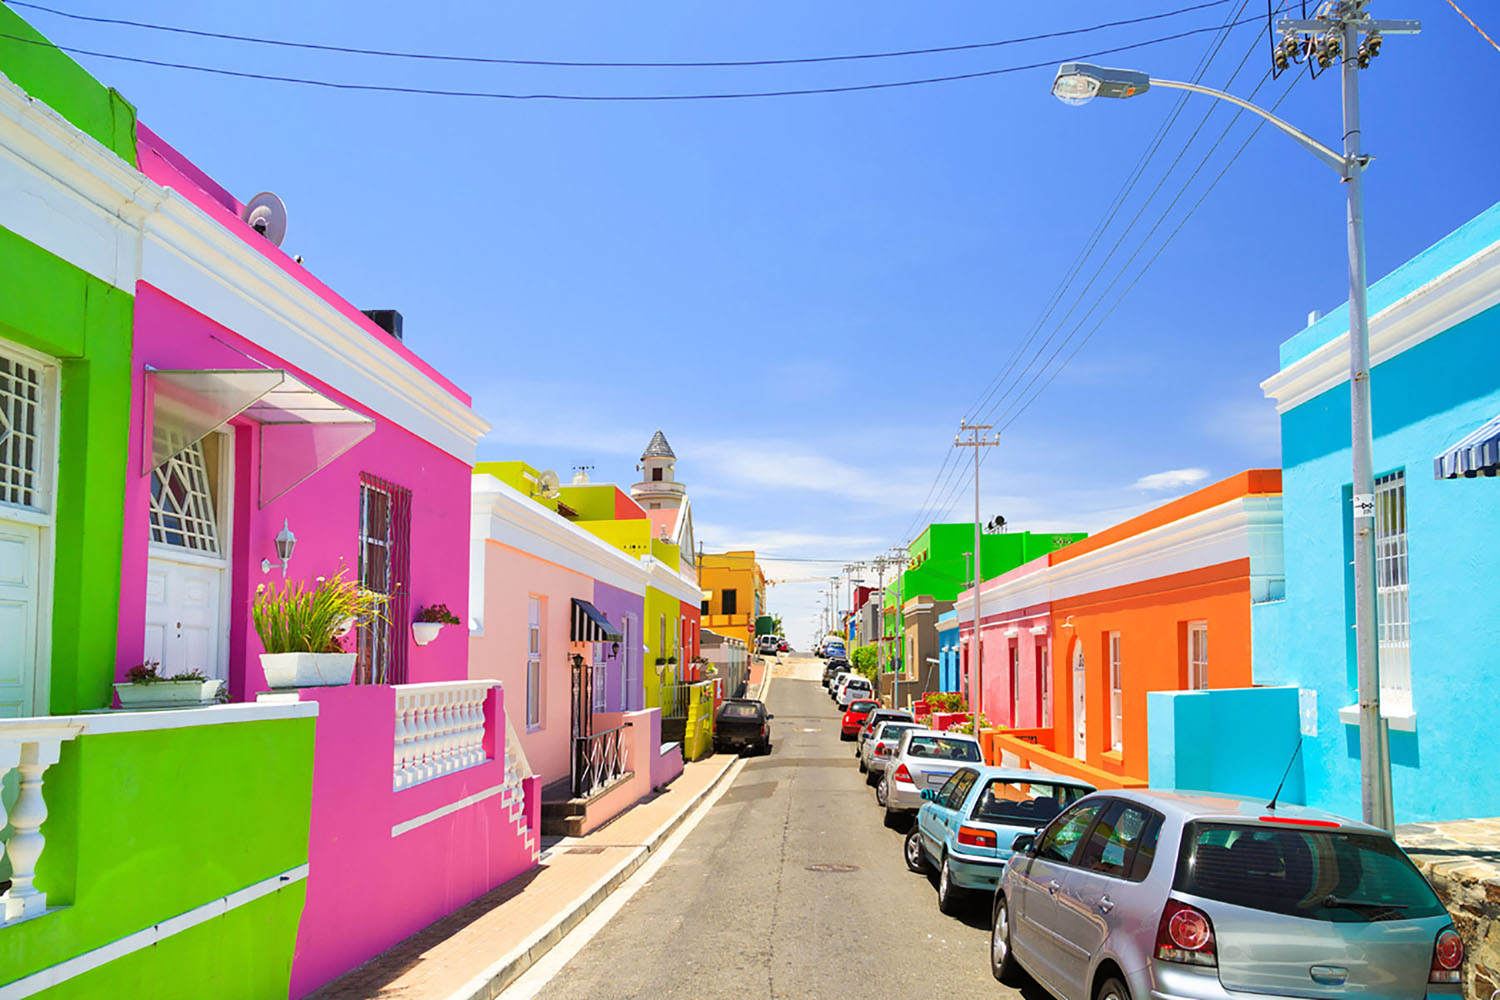 The colorful houses in Cape Town's Bo-Kaap neighborhood.